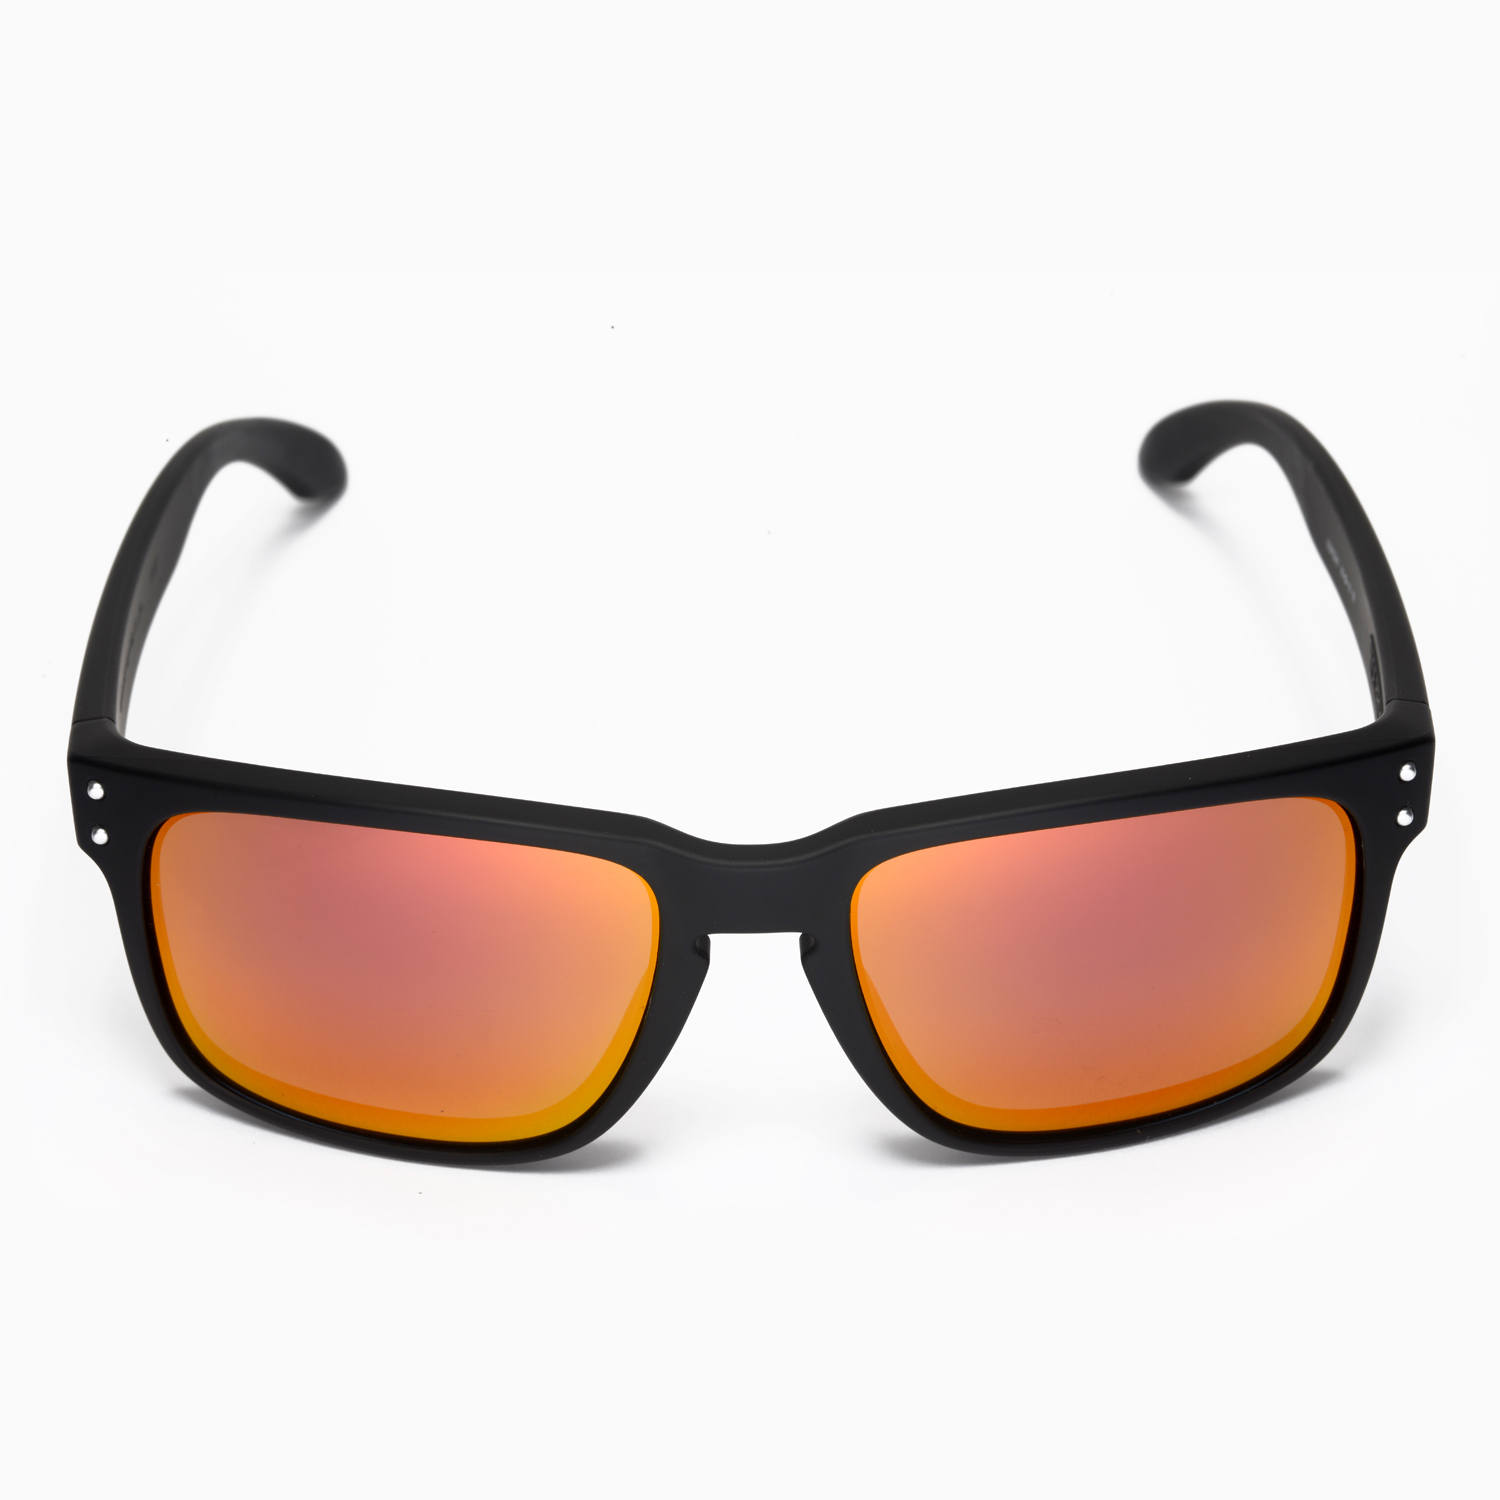 4fd5acf492 New Walleva Fire Red Replacement Lenses For Oakley Holbrook ...